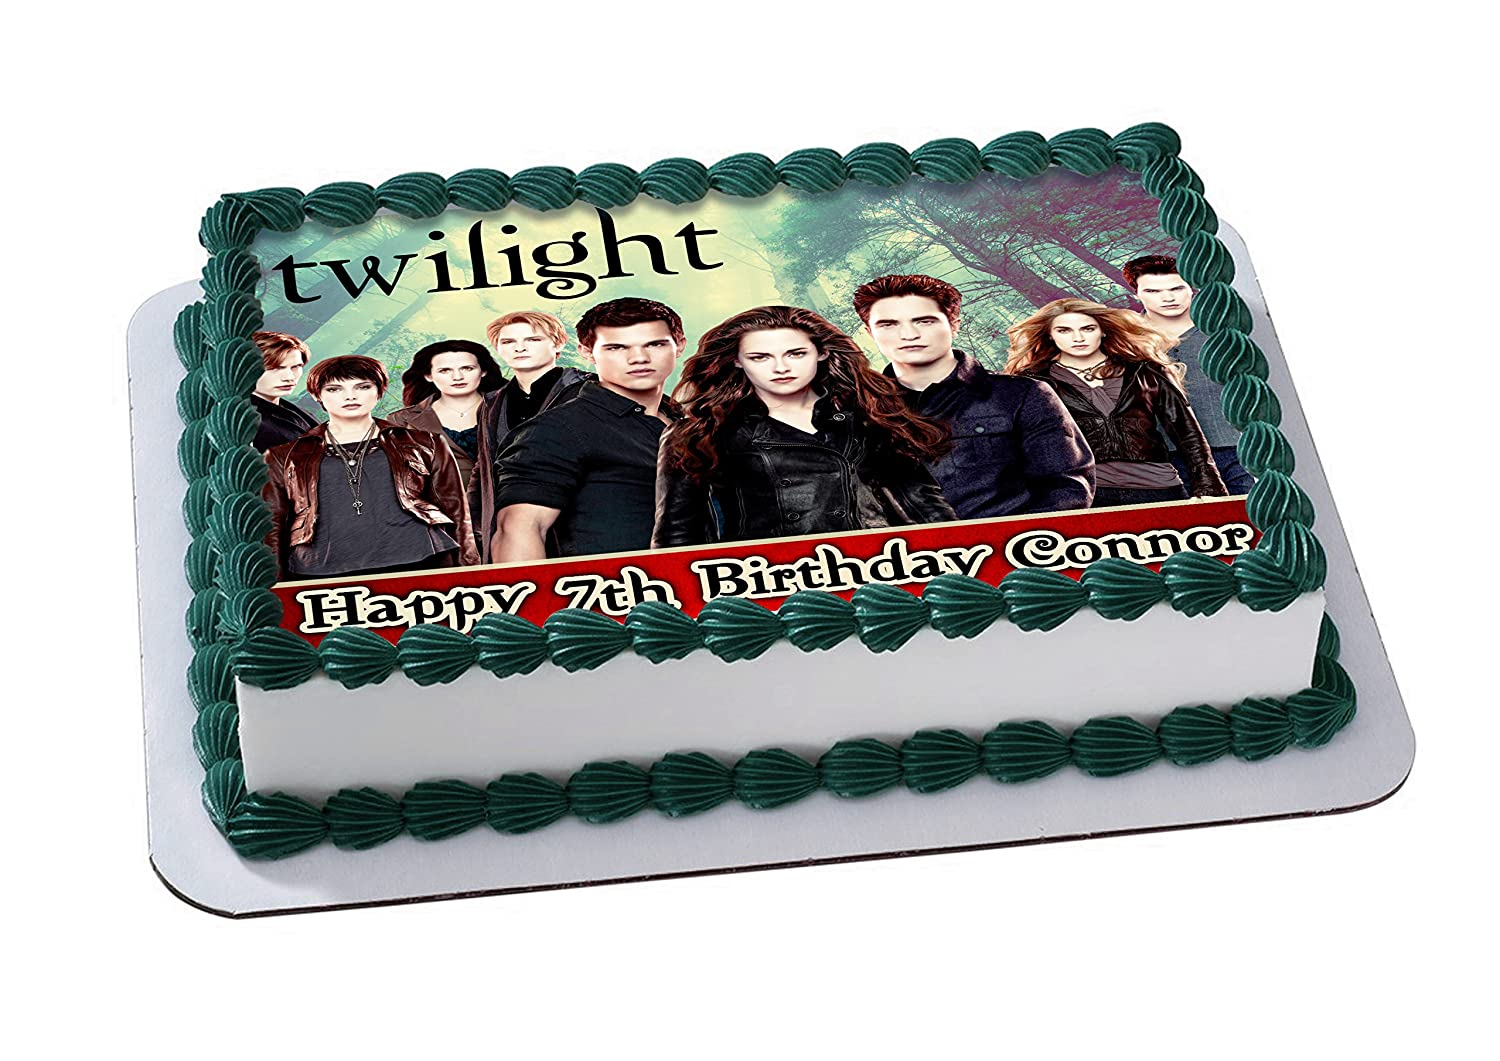 Twilight Edible Cake Topper Personalized Birthday 14 Sheet